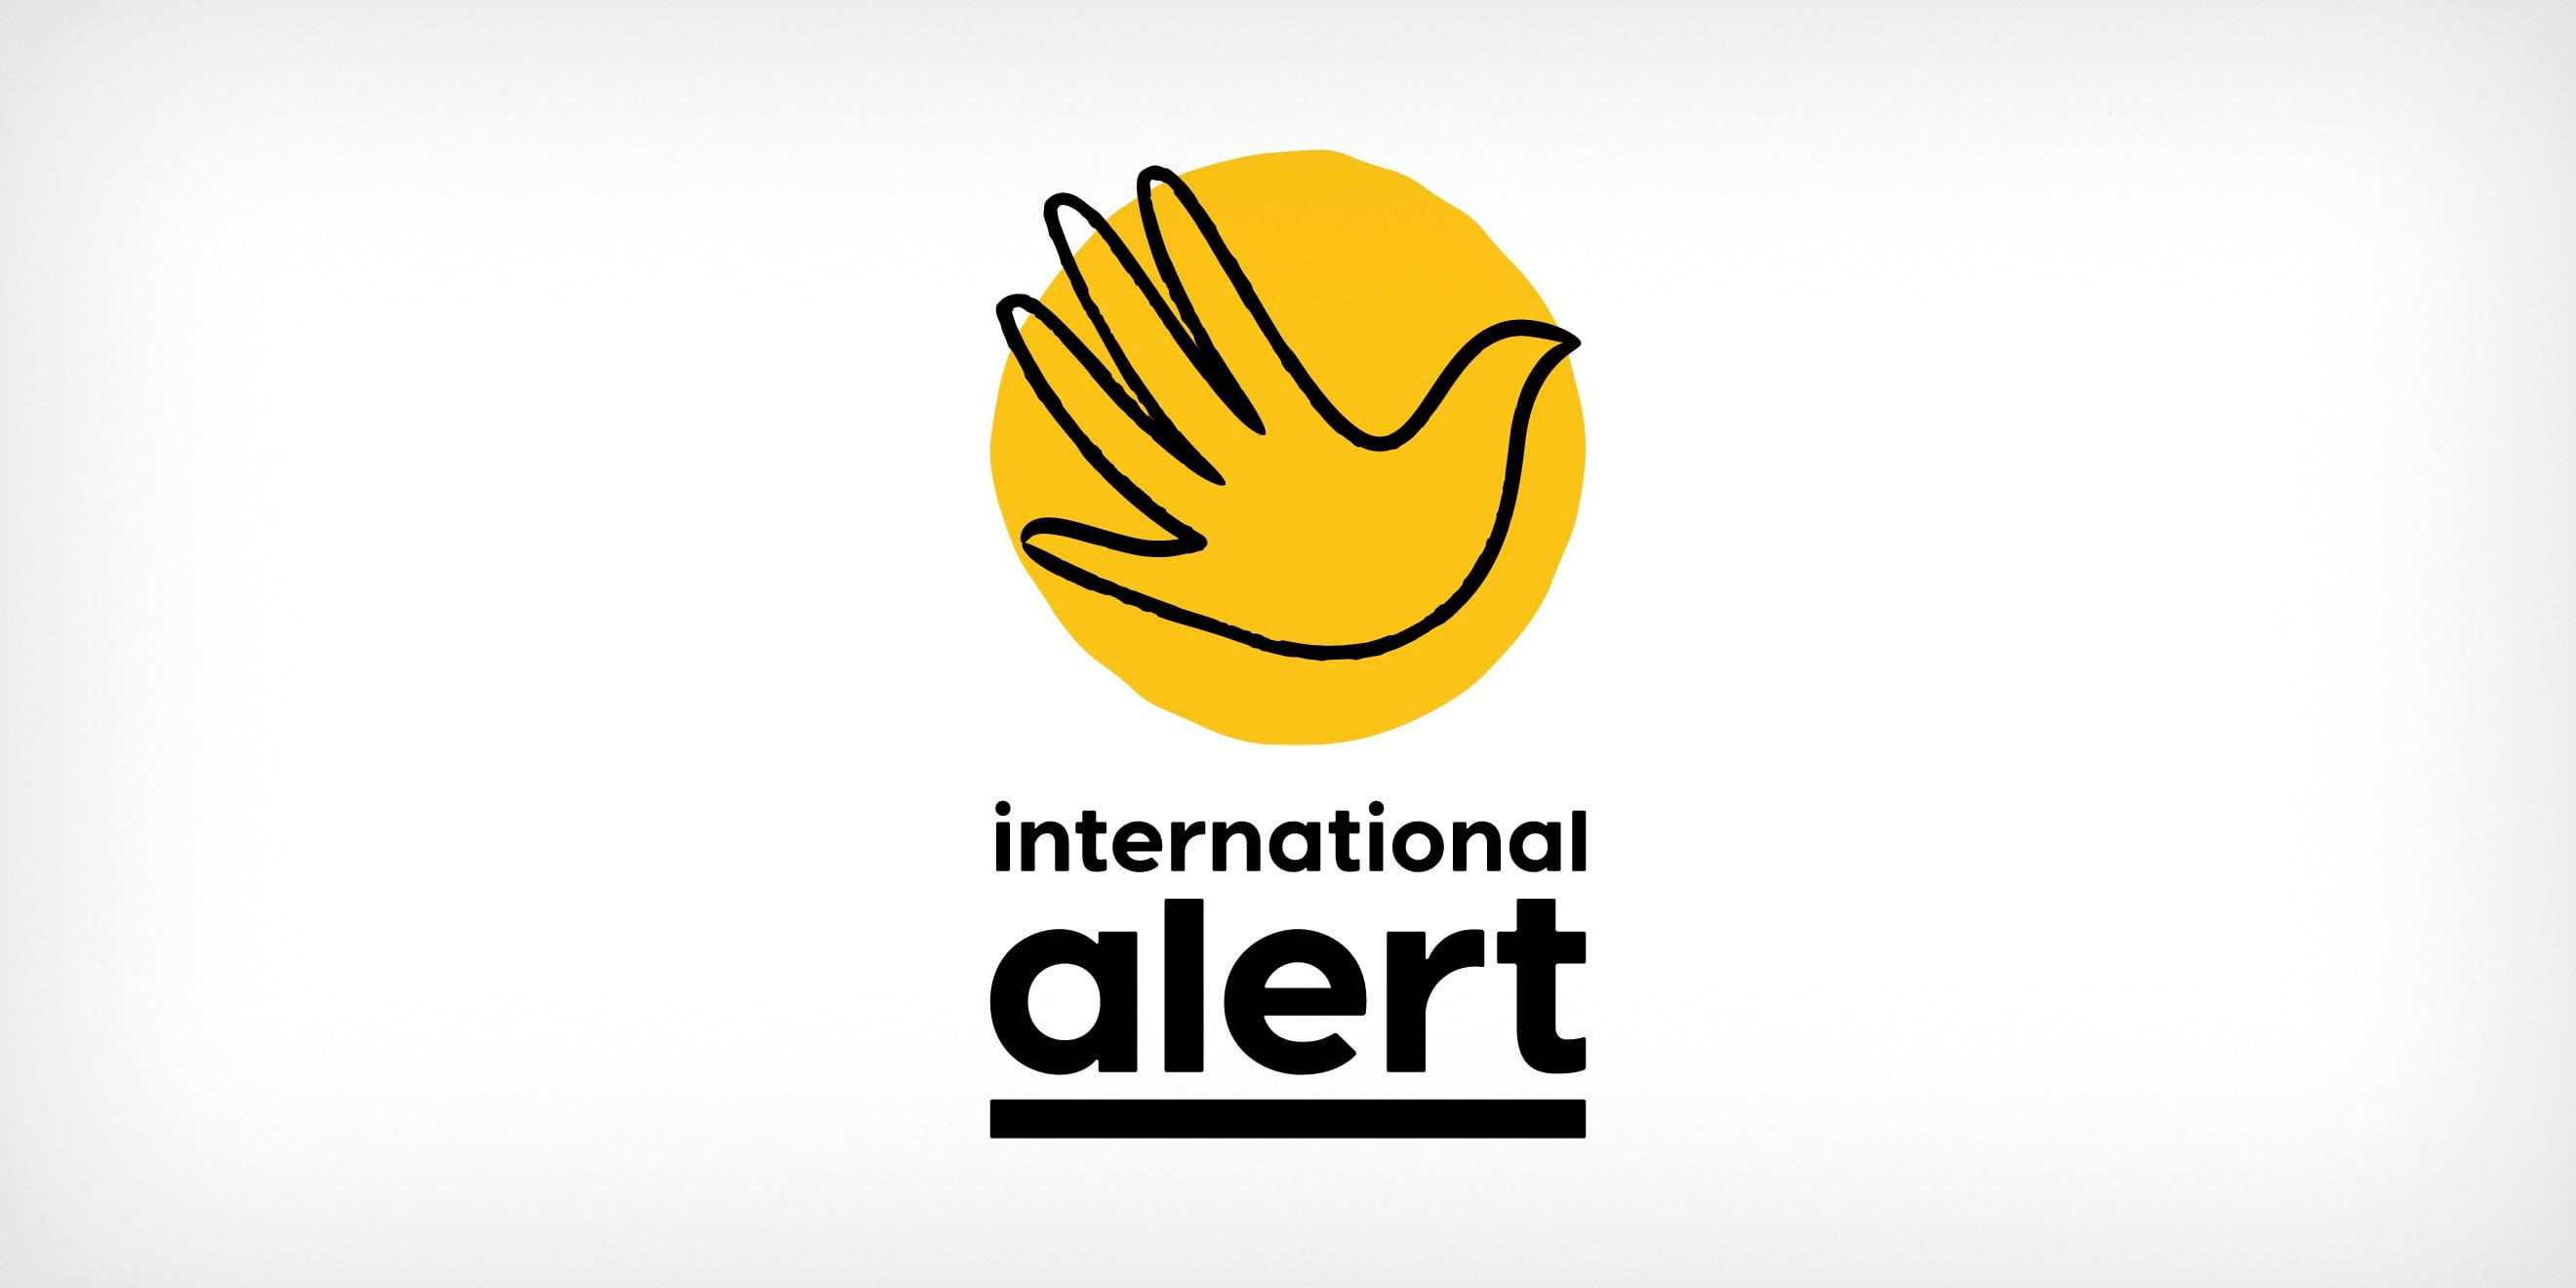 International Alert brand identity logo by Human After All